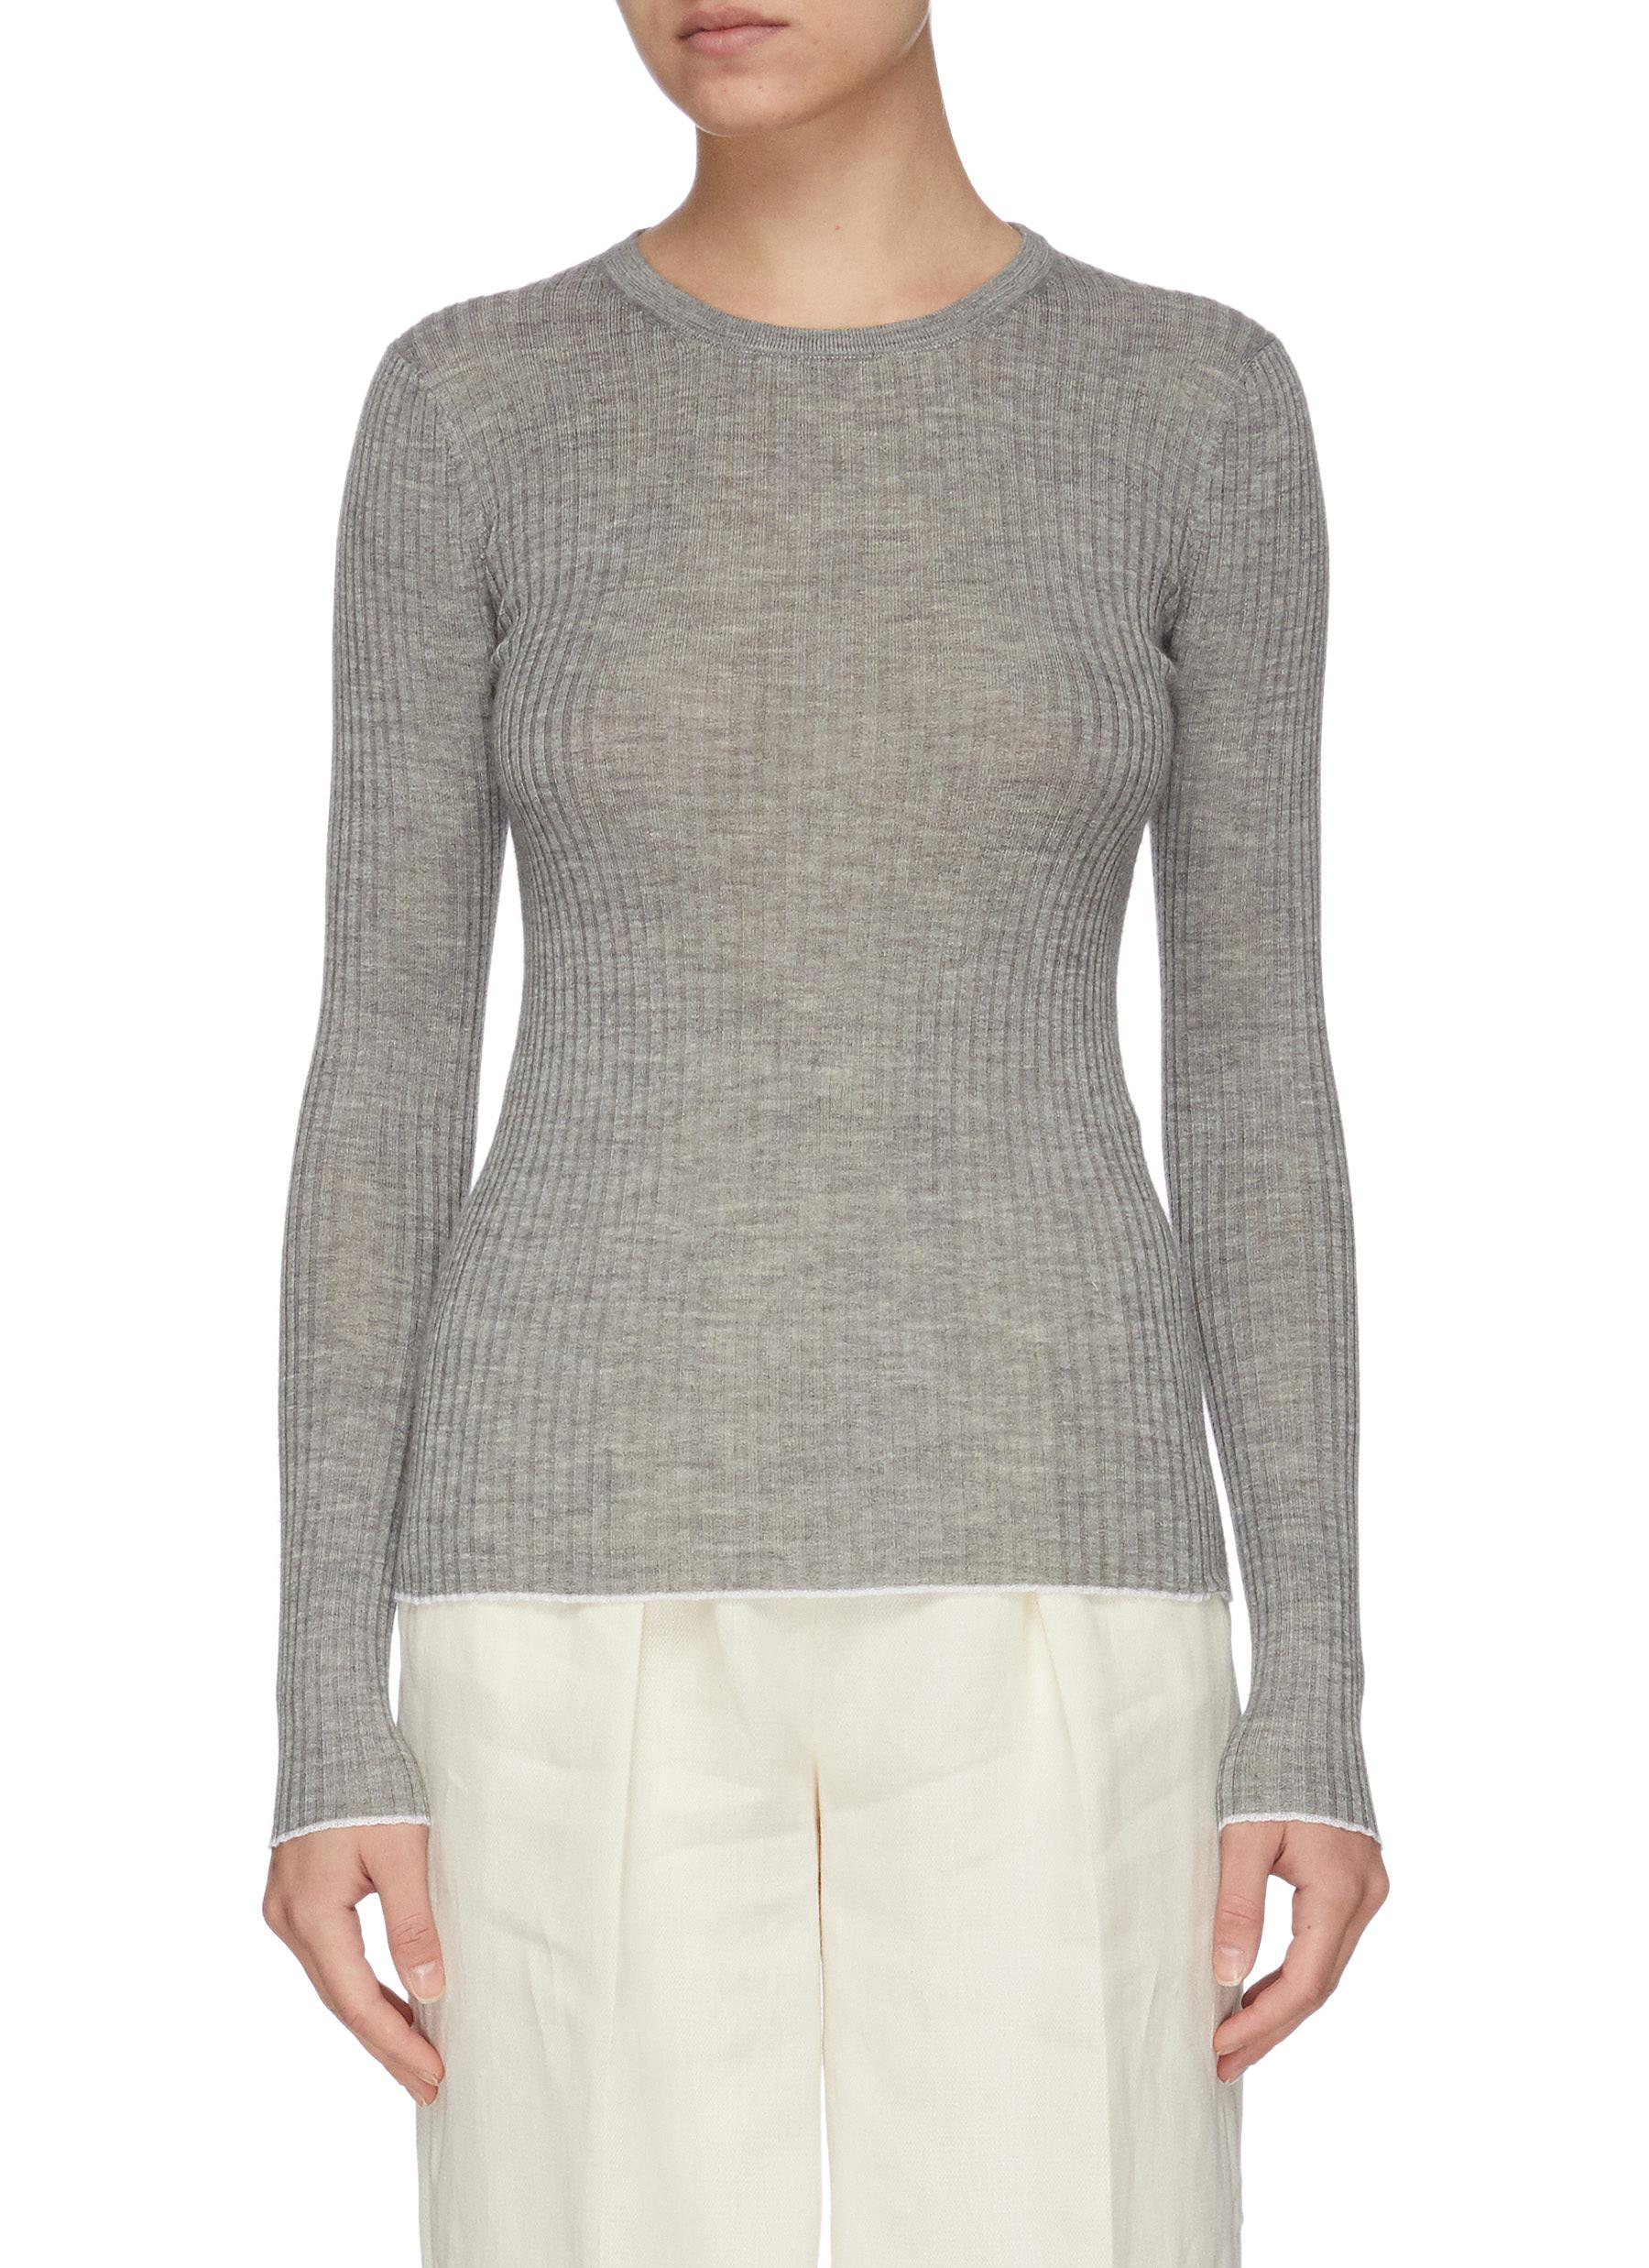 Gabriela Hearst BROWNING' RIB KNIT CASHMERE SILK BLEND SWEATER